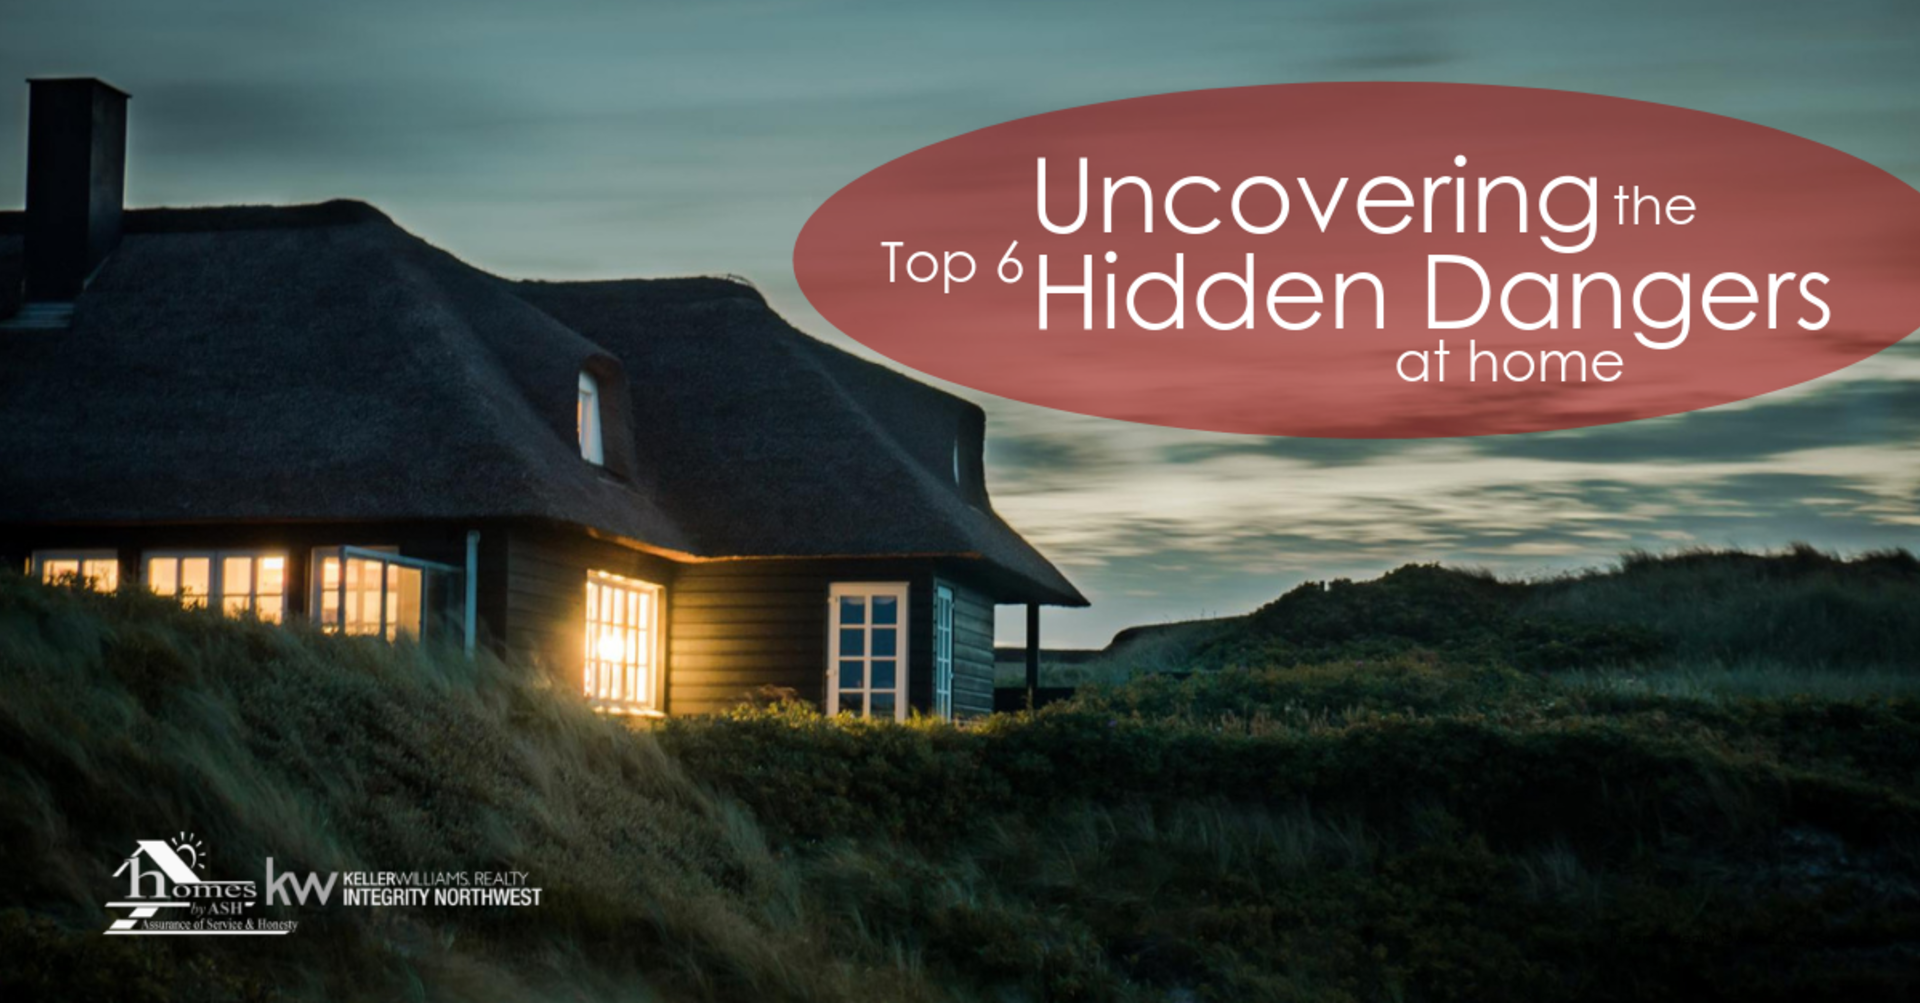 Six Hidden Dangers at Home to Watch Out For